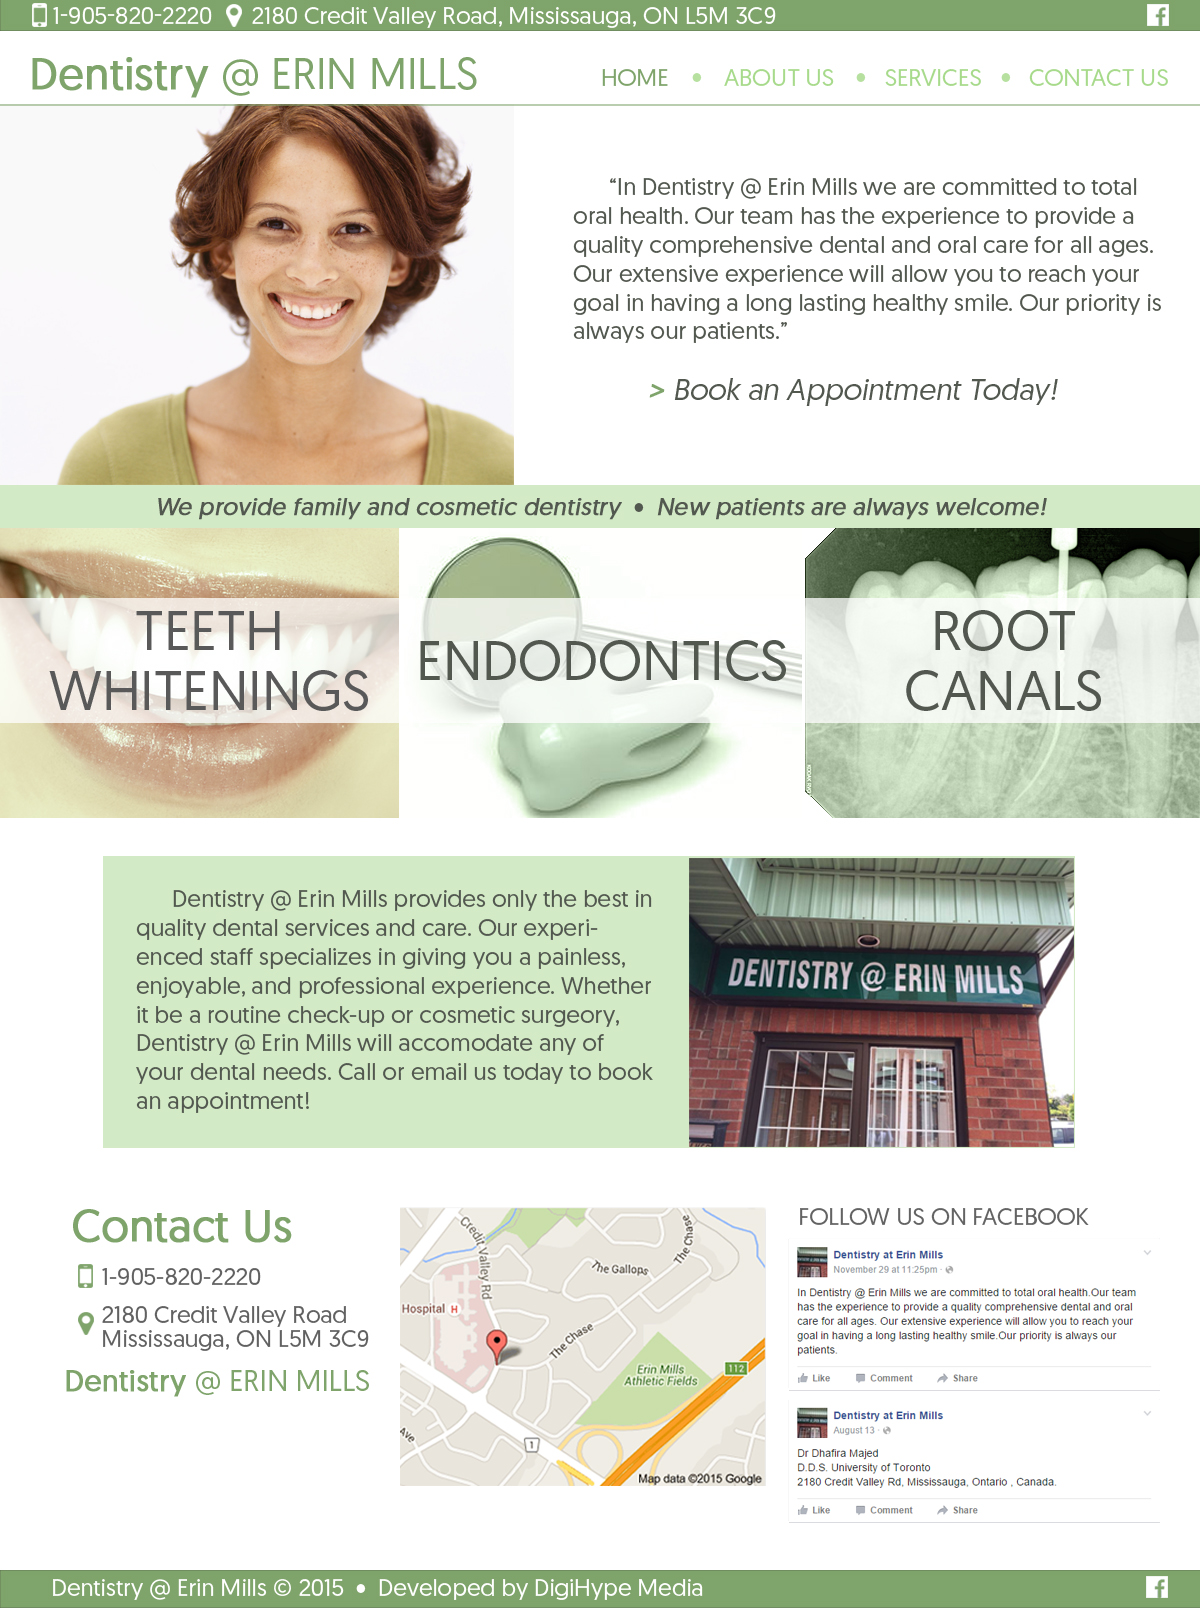 dentist and dental care clinic in Mississauga (Website Mockup design)